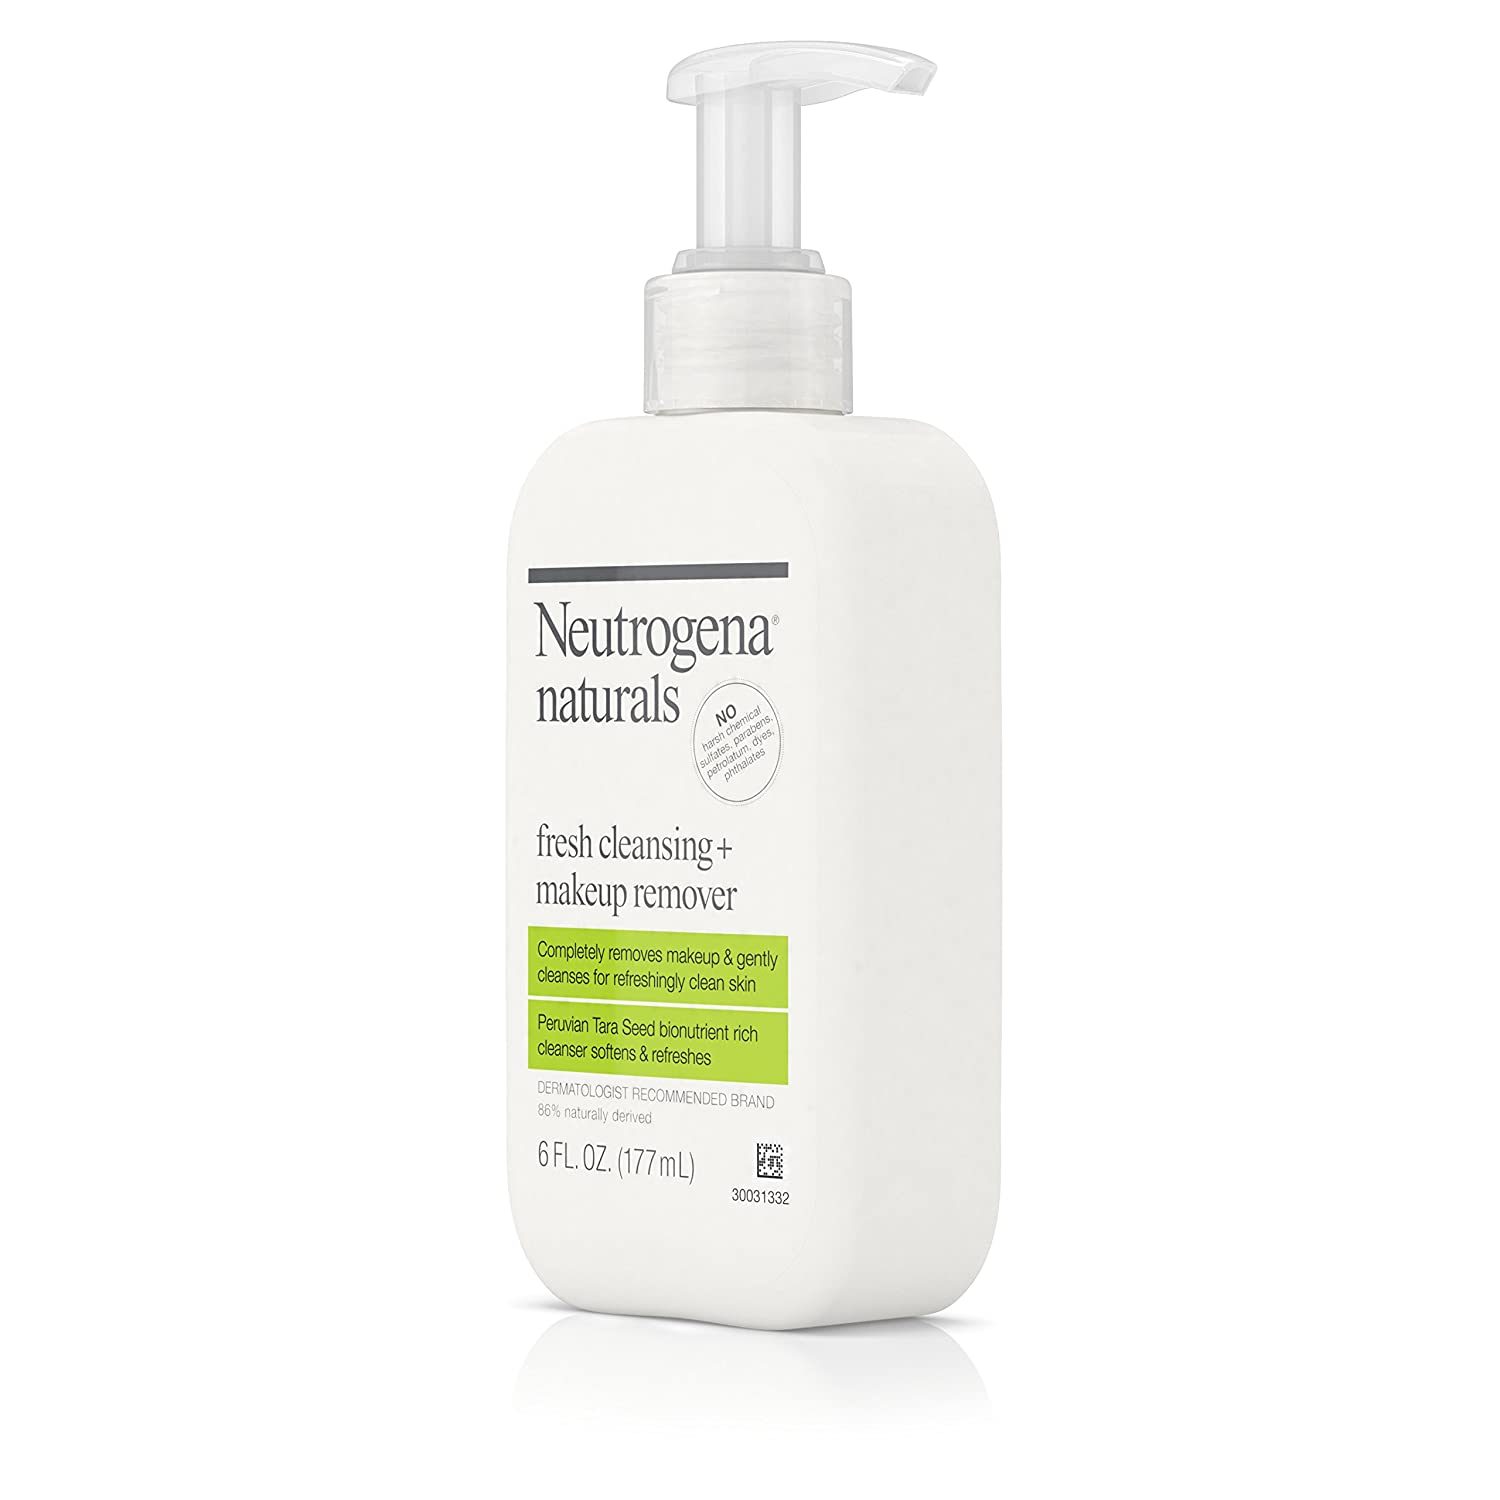 Neutrogena Naturals Fresh Cleansing Plus Makeup Remover - 6 Oz, 3 Pack Vaseline Lip Therapy Lip Balm Tin Original 0.6 oz